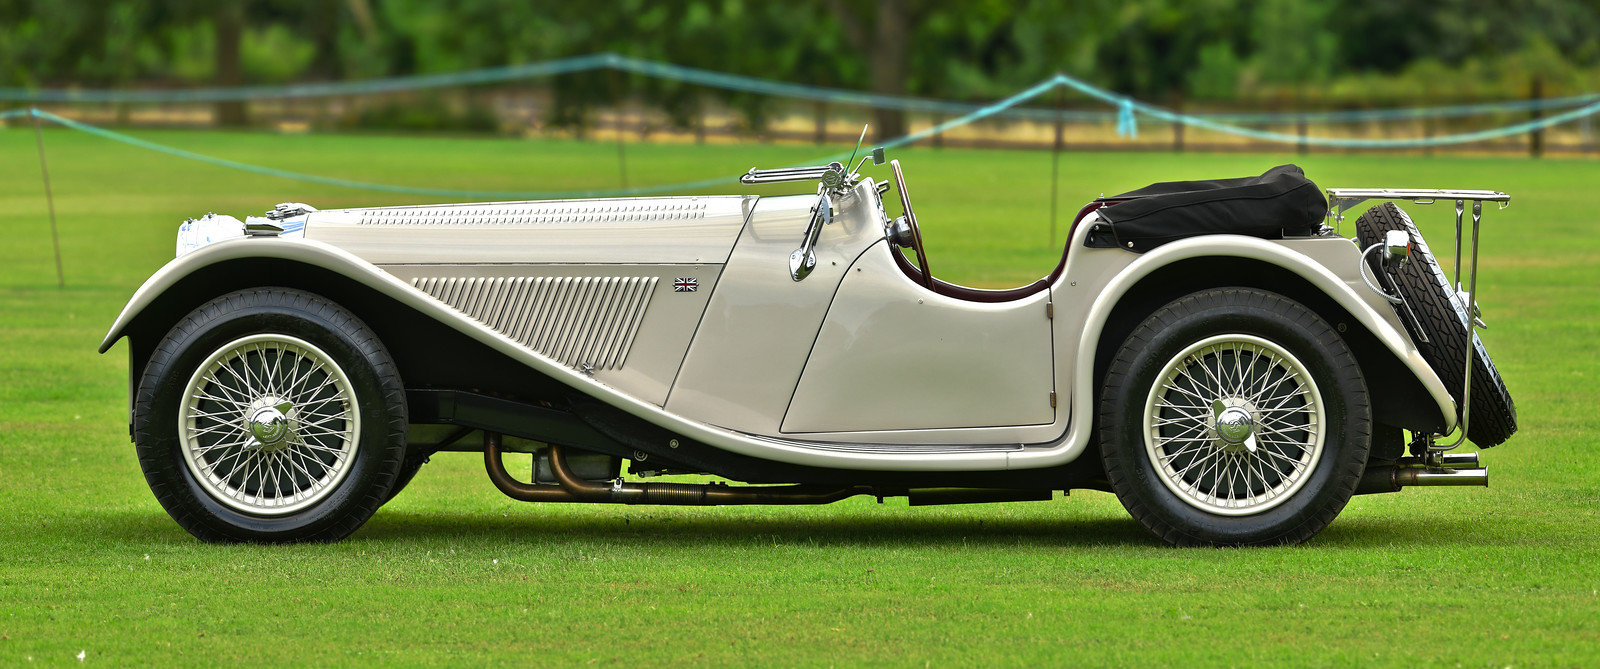 1964 Jaguar SS100 By Suffolk, Left Hand Drive For Sale (picture 2 of 6)